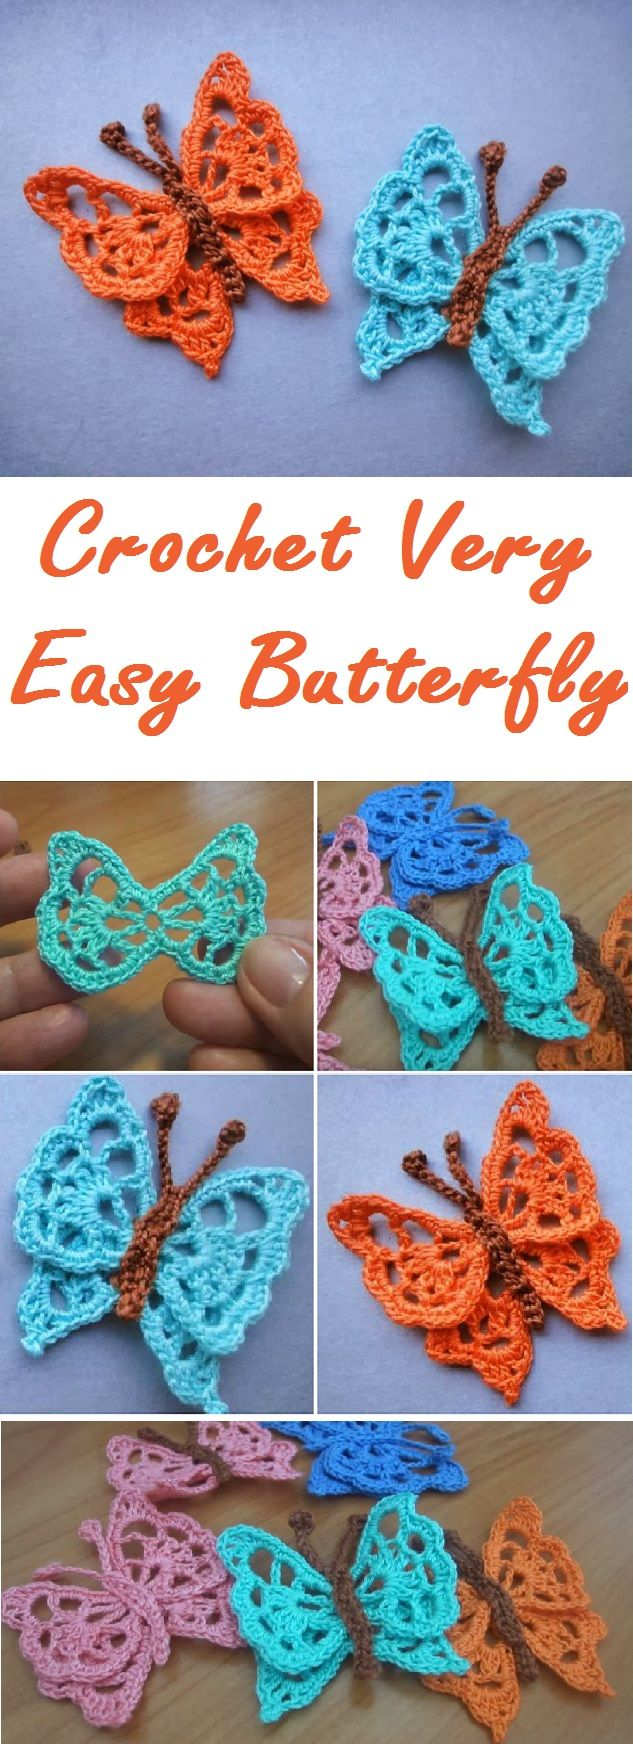 Crochet very easy butterfly step by step | Crochet | Pinterest ...